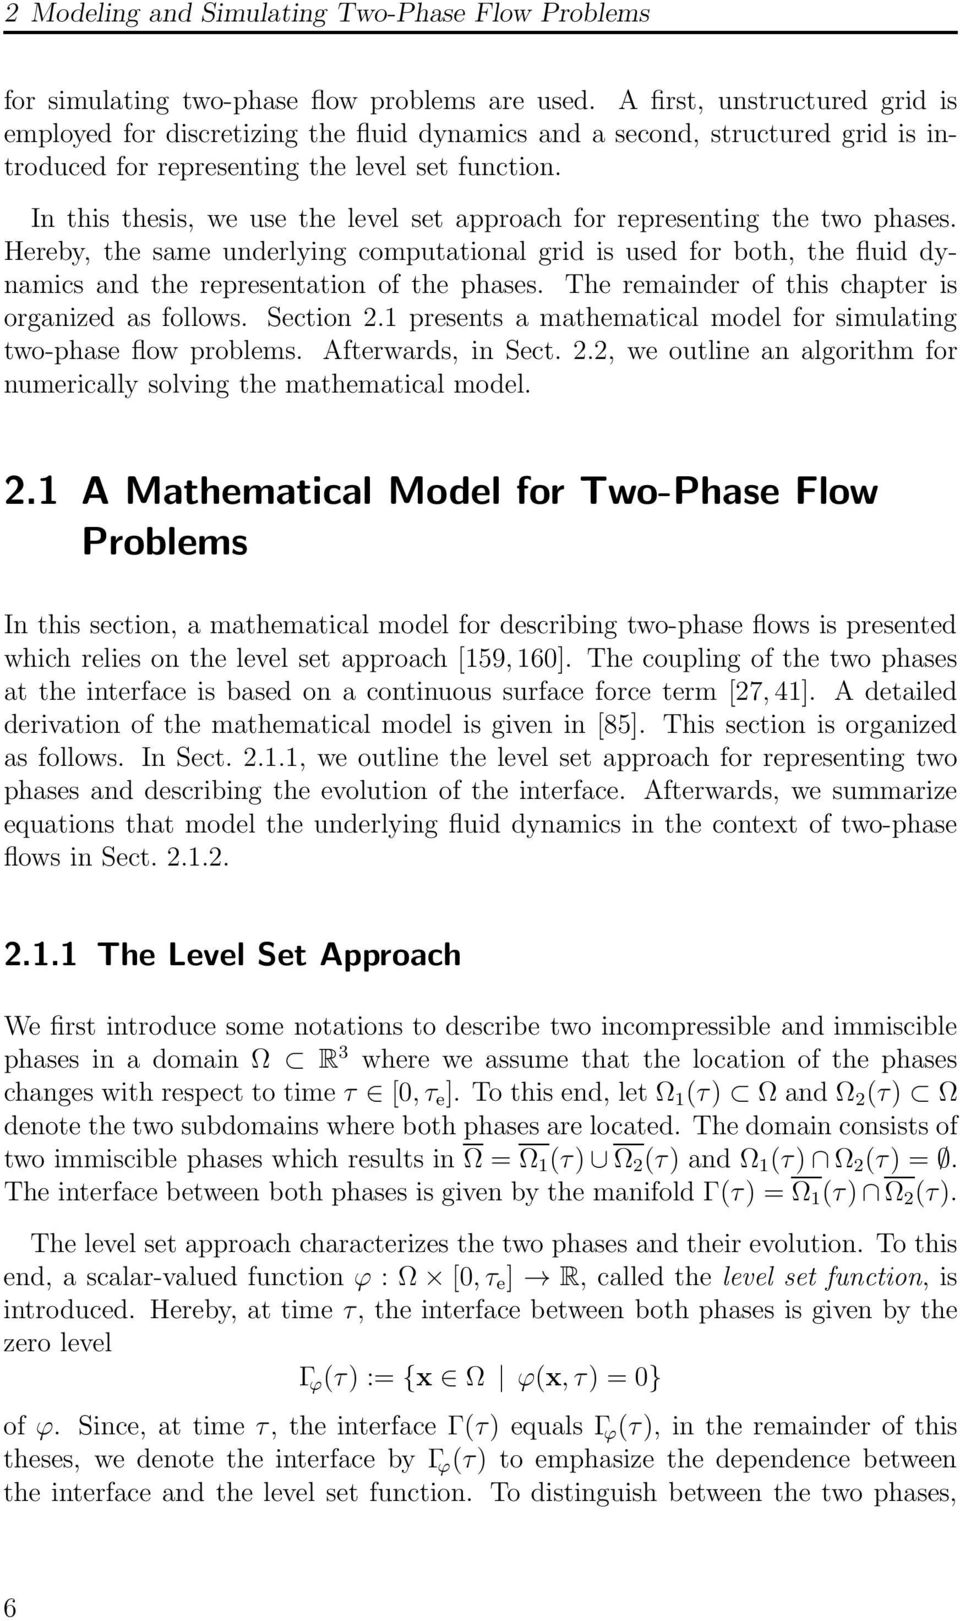 In this thesis, we use the level set approach for representing the two phases. Hereby, the same underlying computational grid is used for both, the fluid dynamics and the representation of the phases.